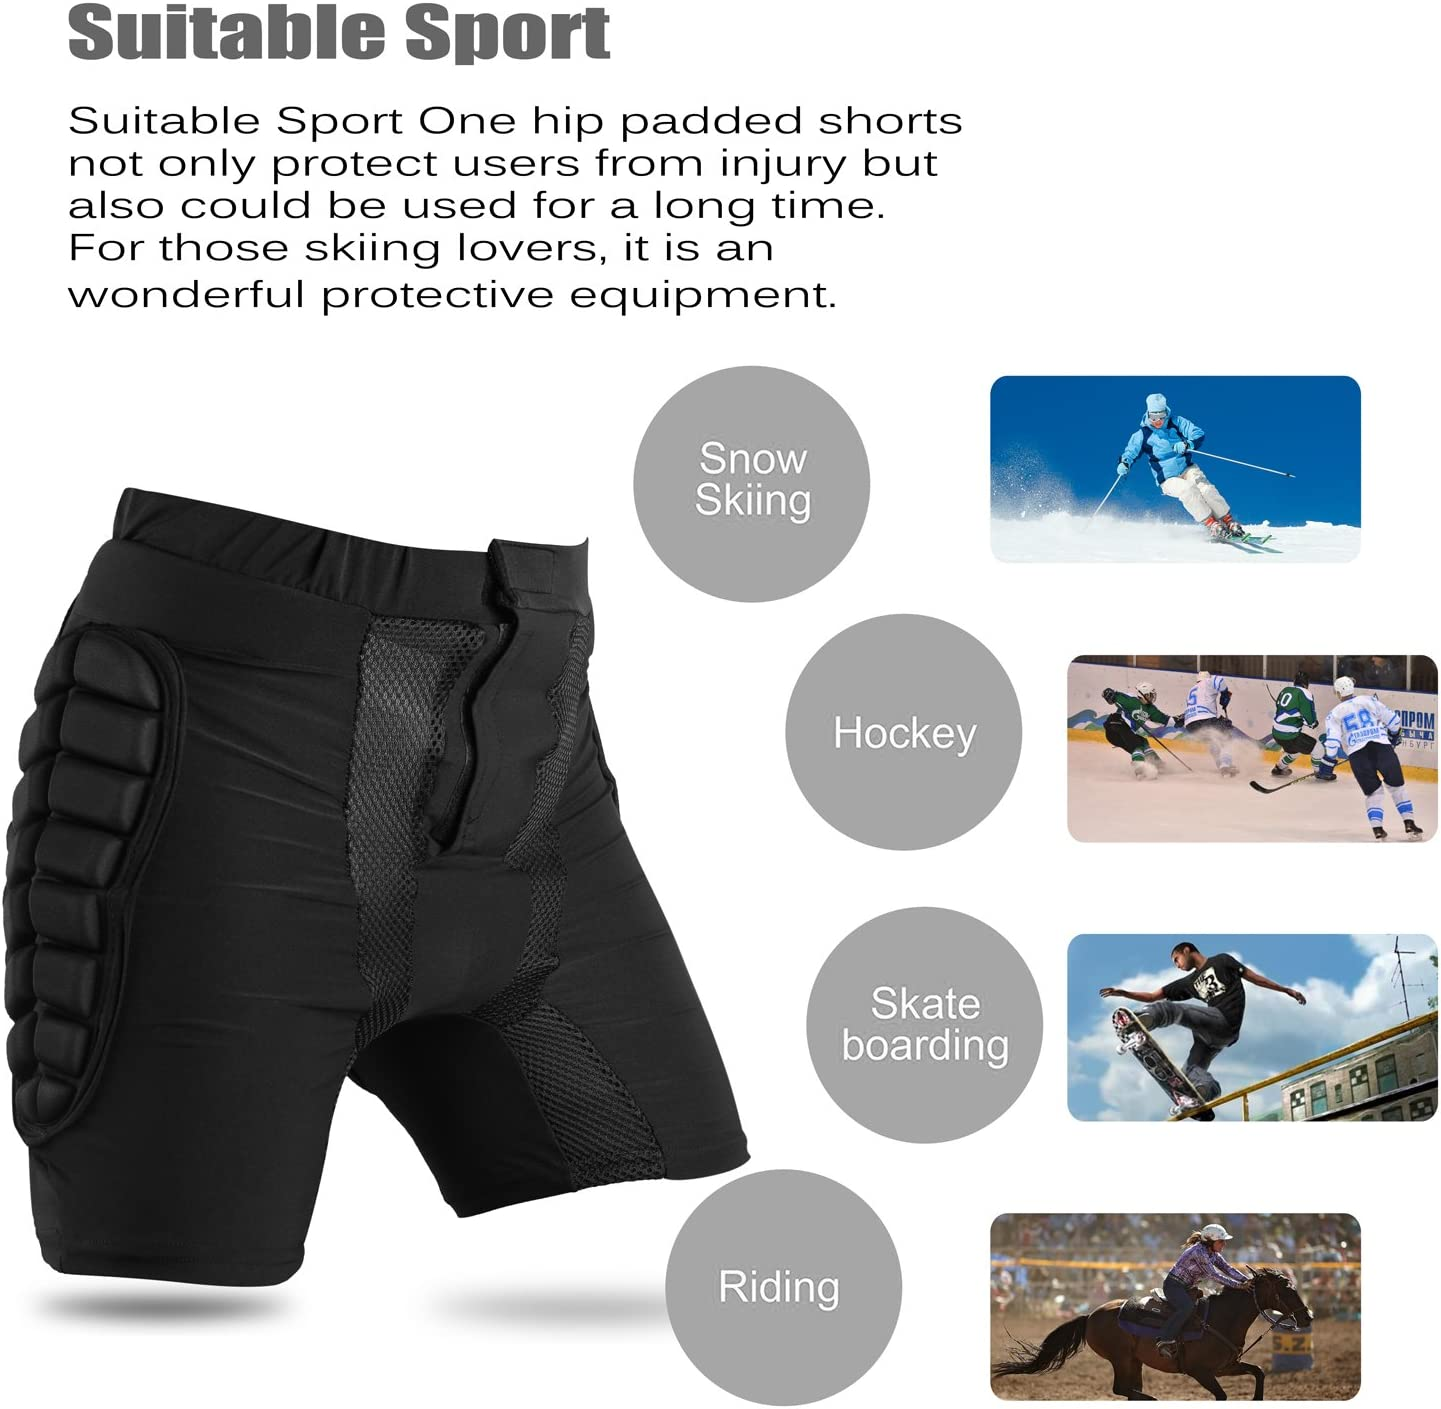 Kids Protection Hip 3D Padded Shorts Pants Breathable Lightweight Protective Gear for Ski Skate Snowboard